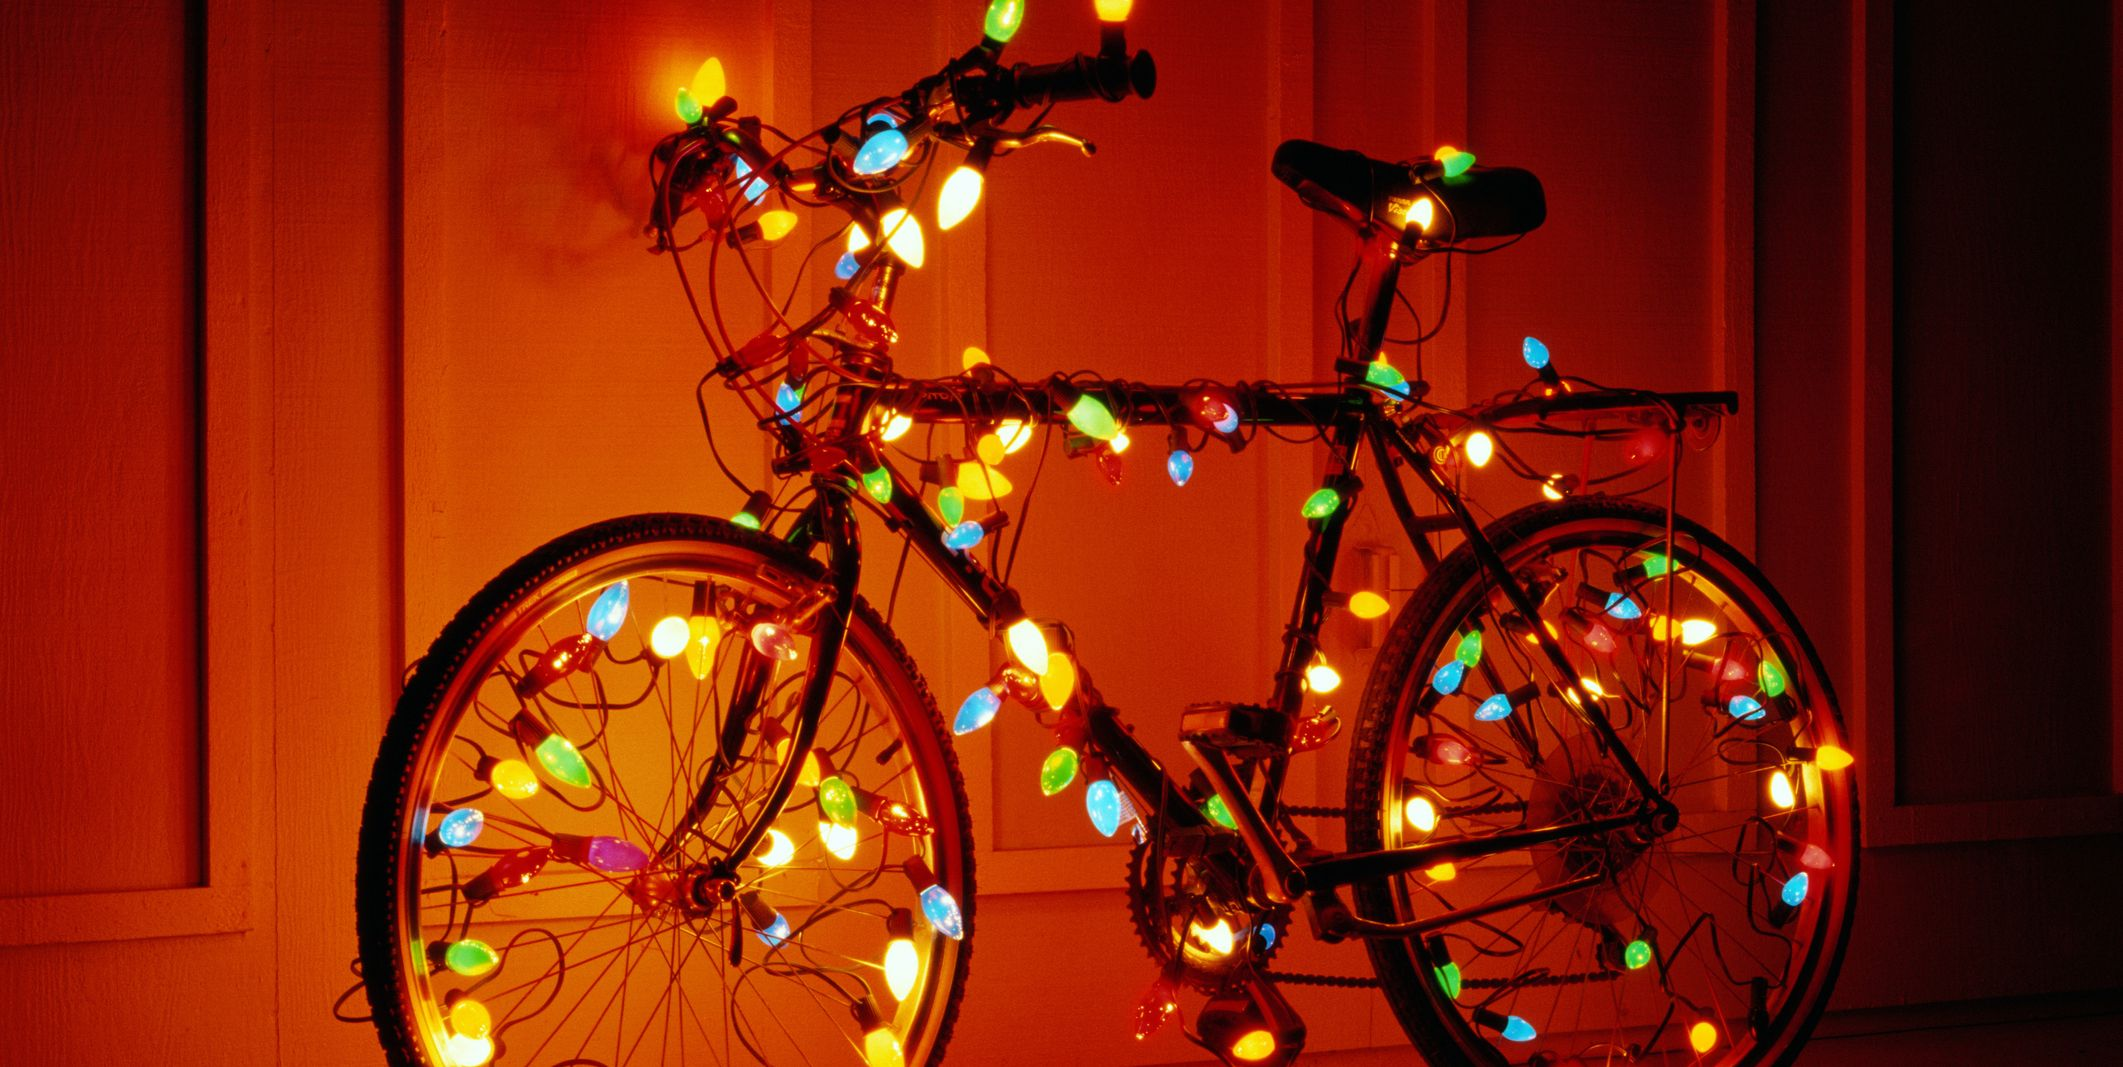 BIKE WRAPPED IN CHRISTMAS LIGHTS